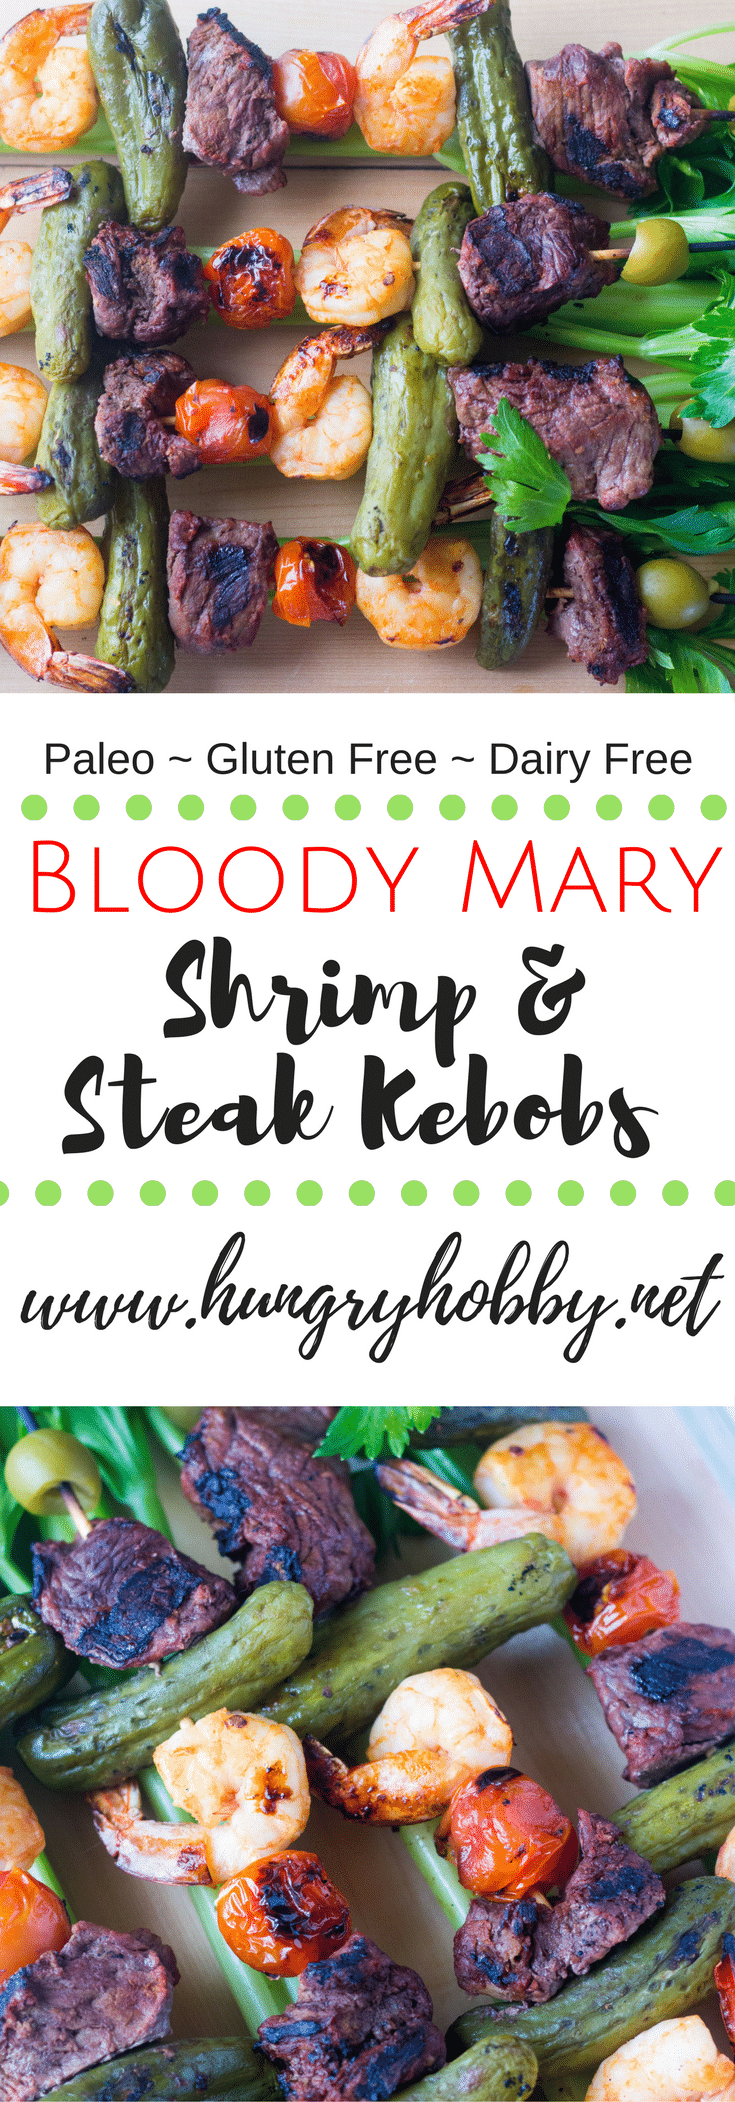 A fun zesty and juicy bloody Mary themed steak and shrimp kebob for your next backyard cookout! Paleo Friendly (gluten & dairy free)